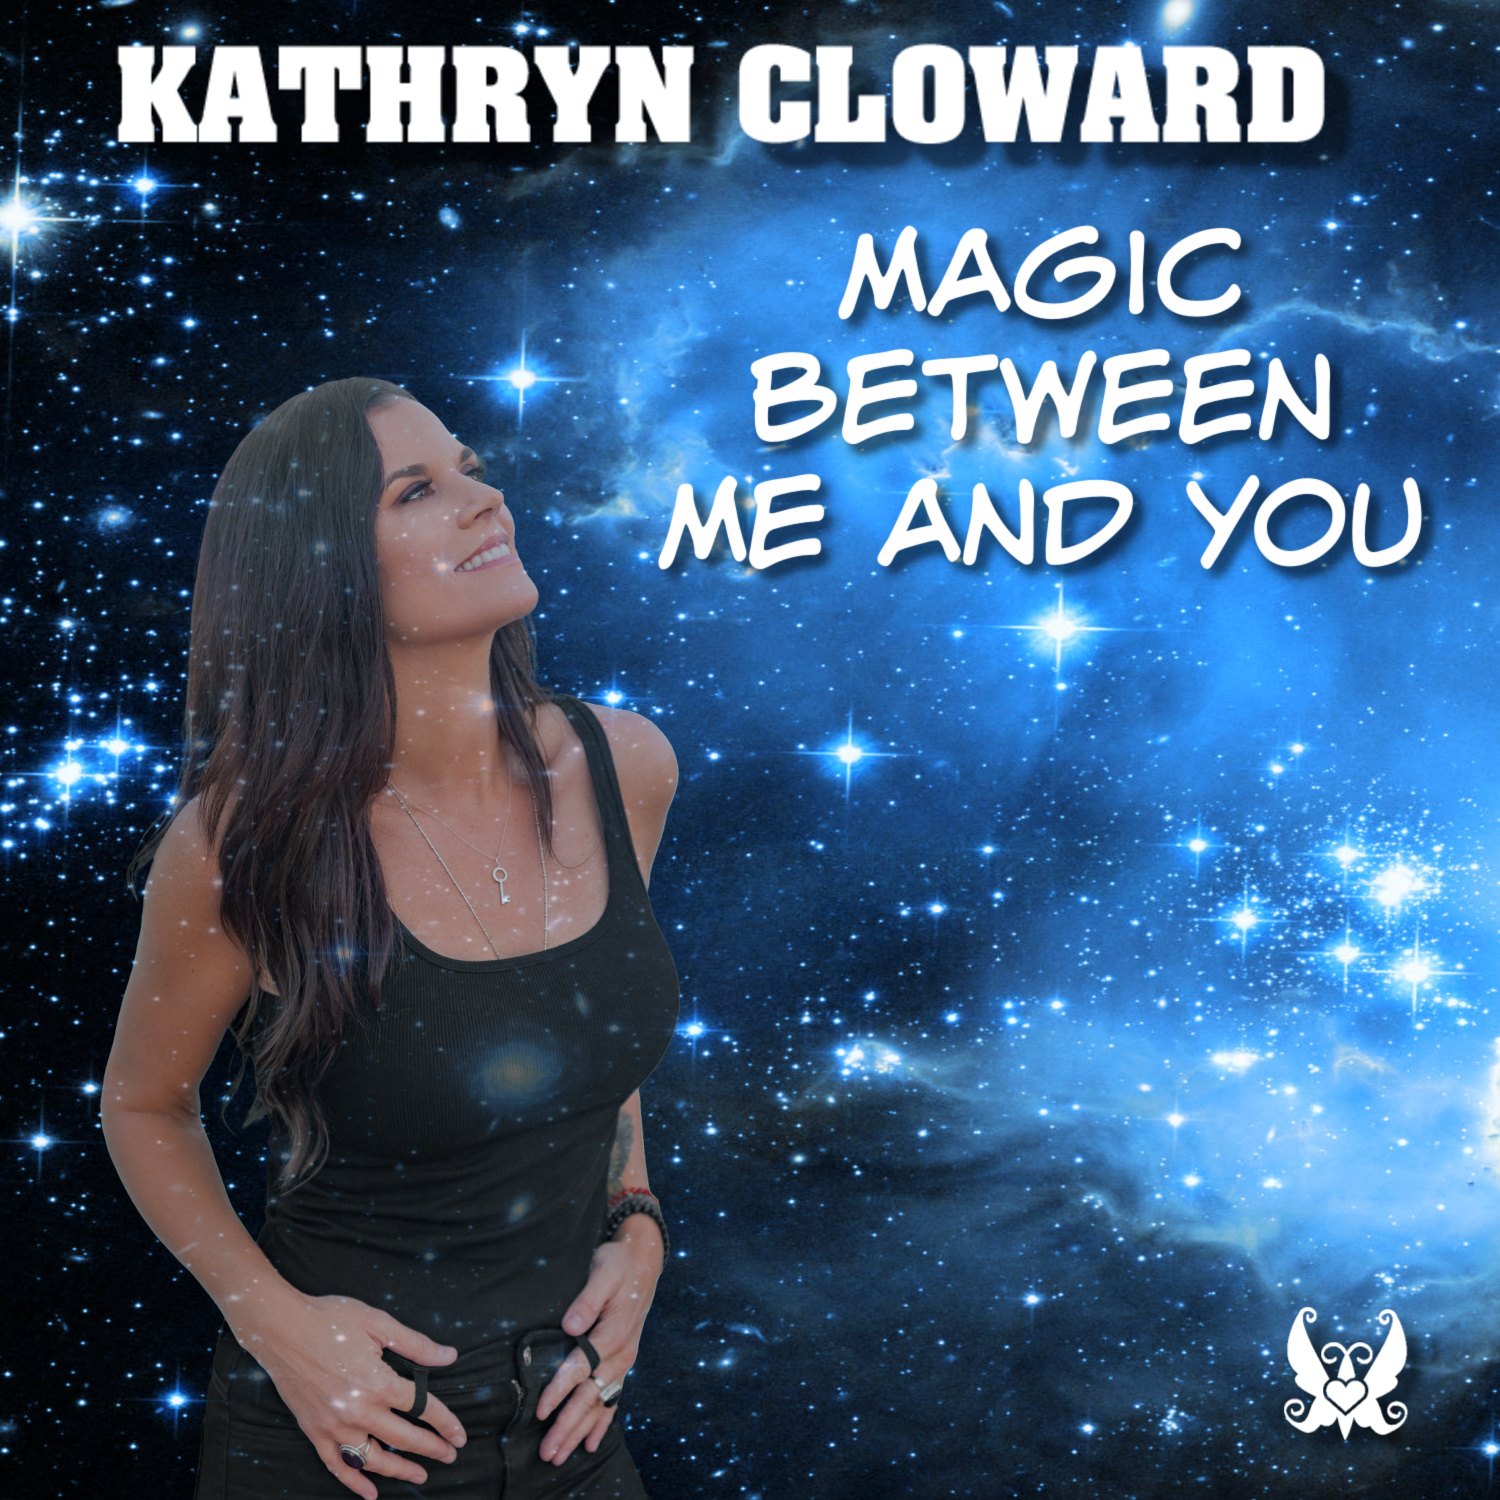 Kathryn Cloward Magic Between Me and You